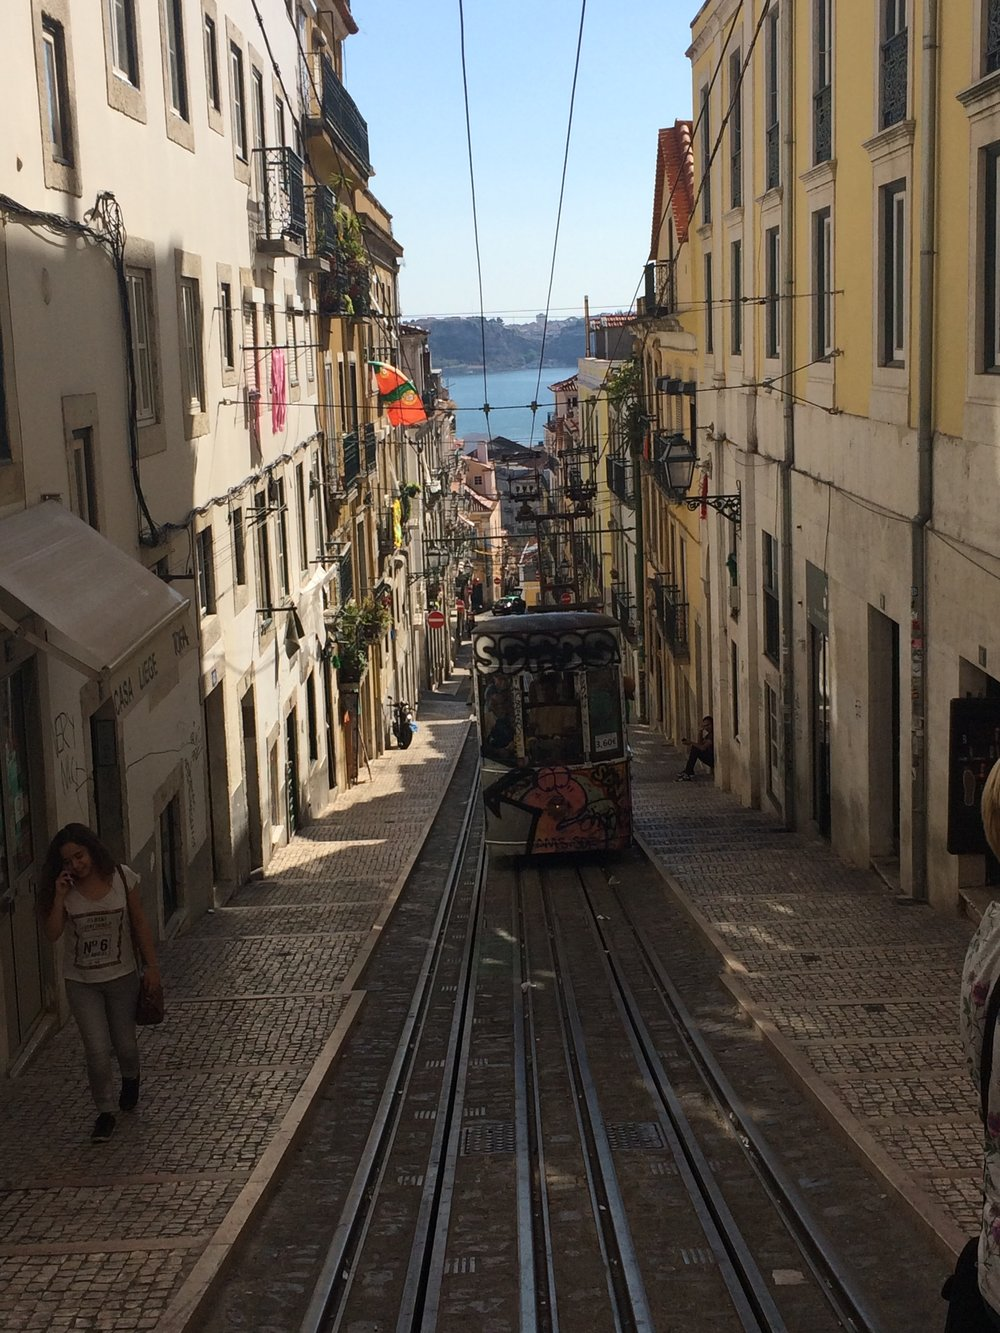 Lisbon's signature streetcars are everywhere